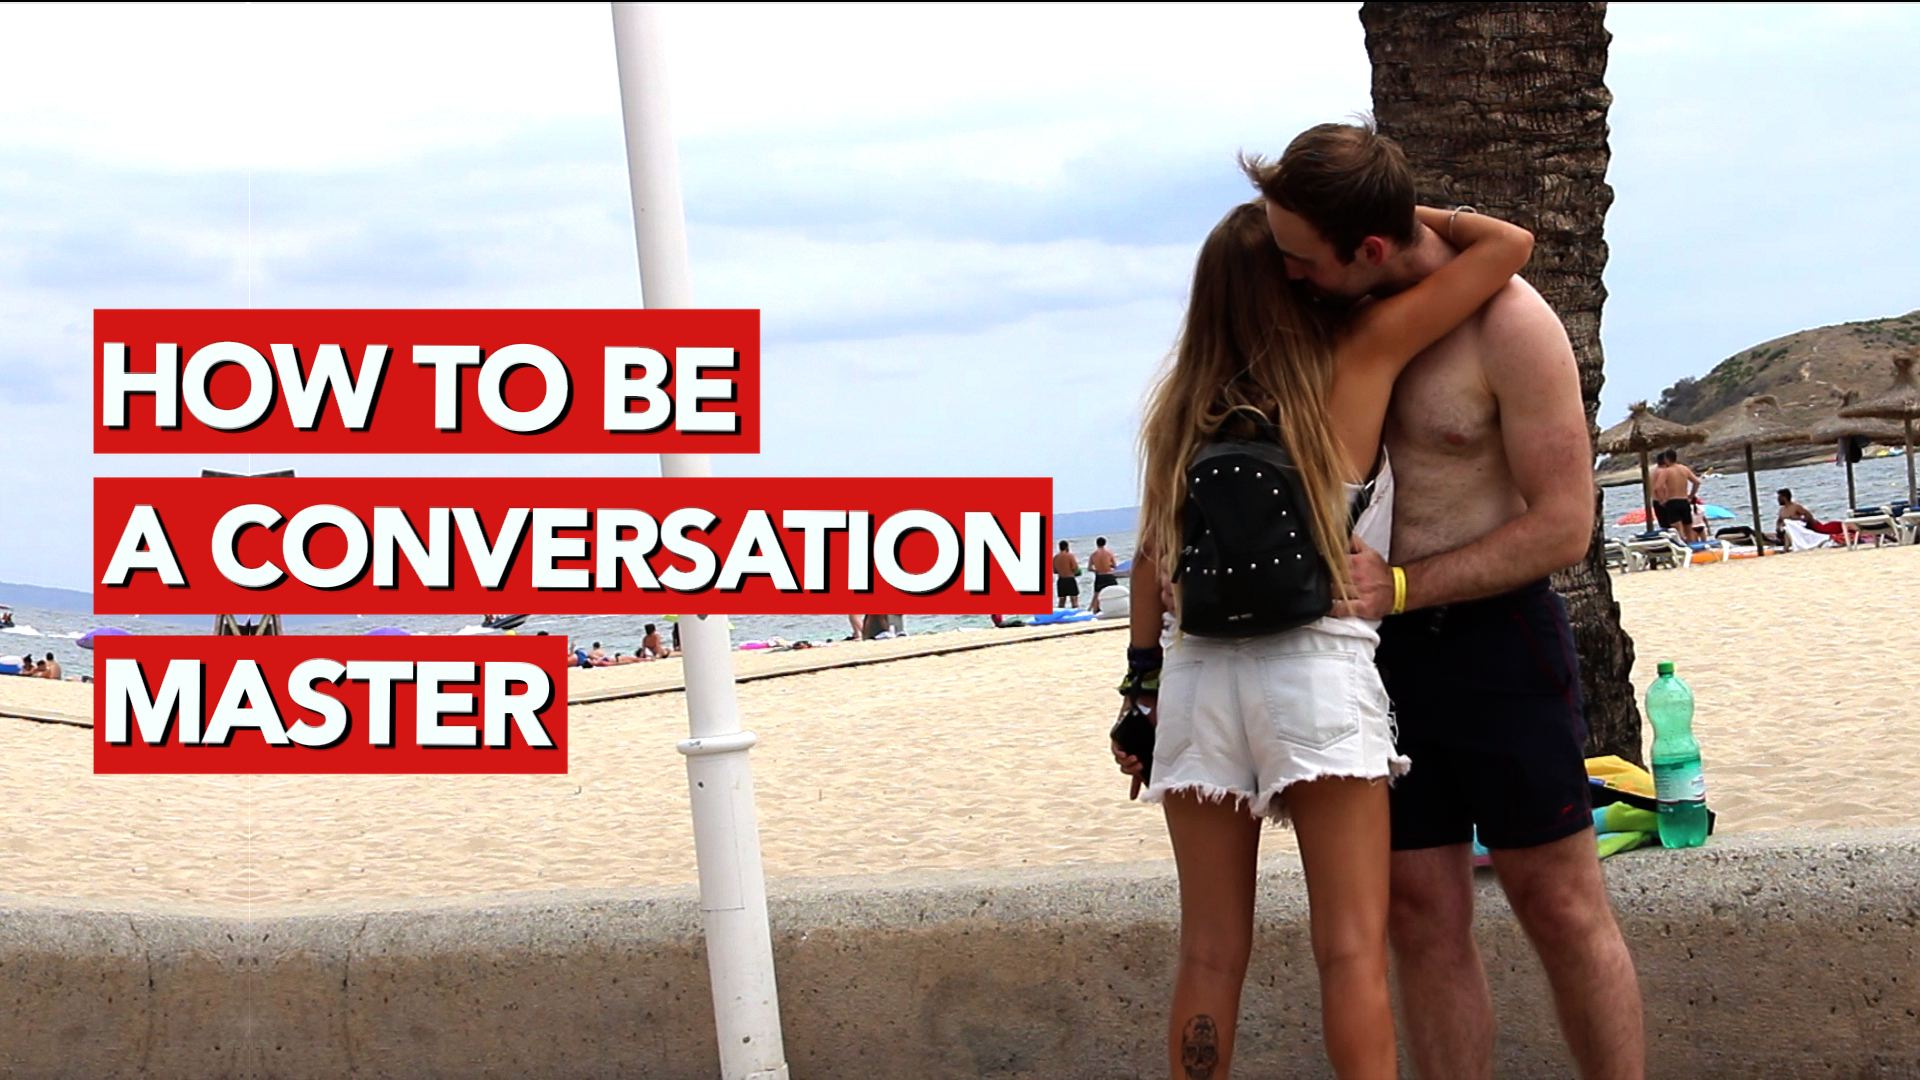 How to be a conversation master